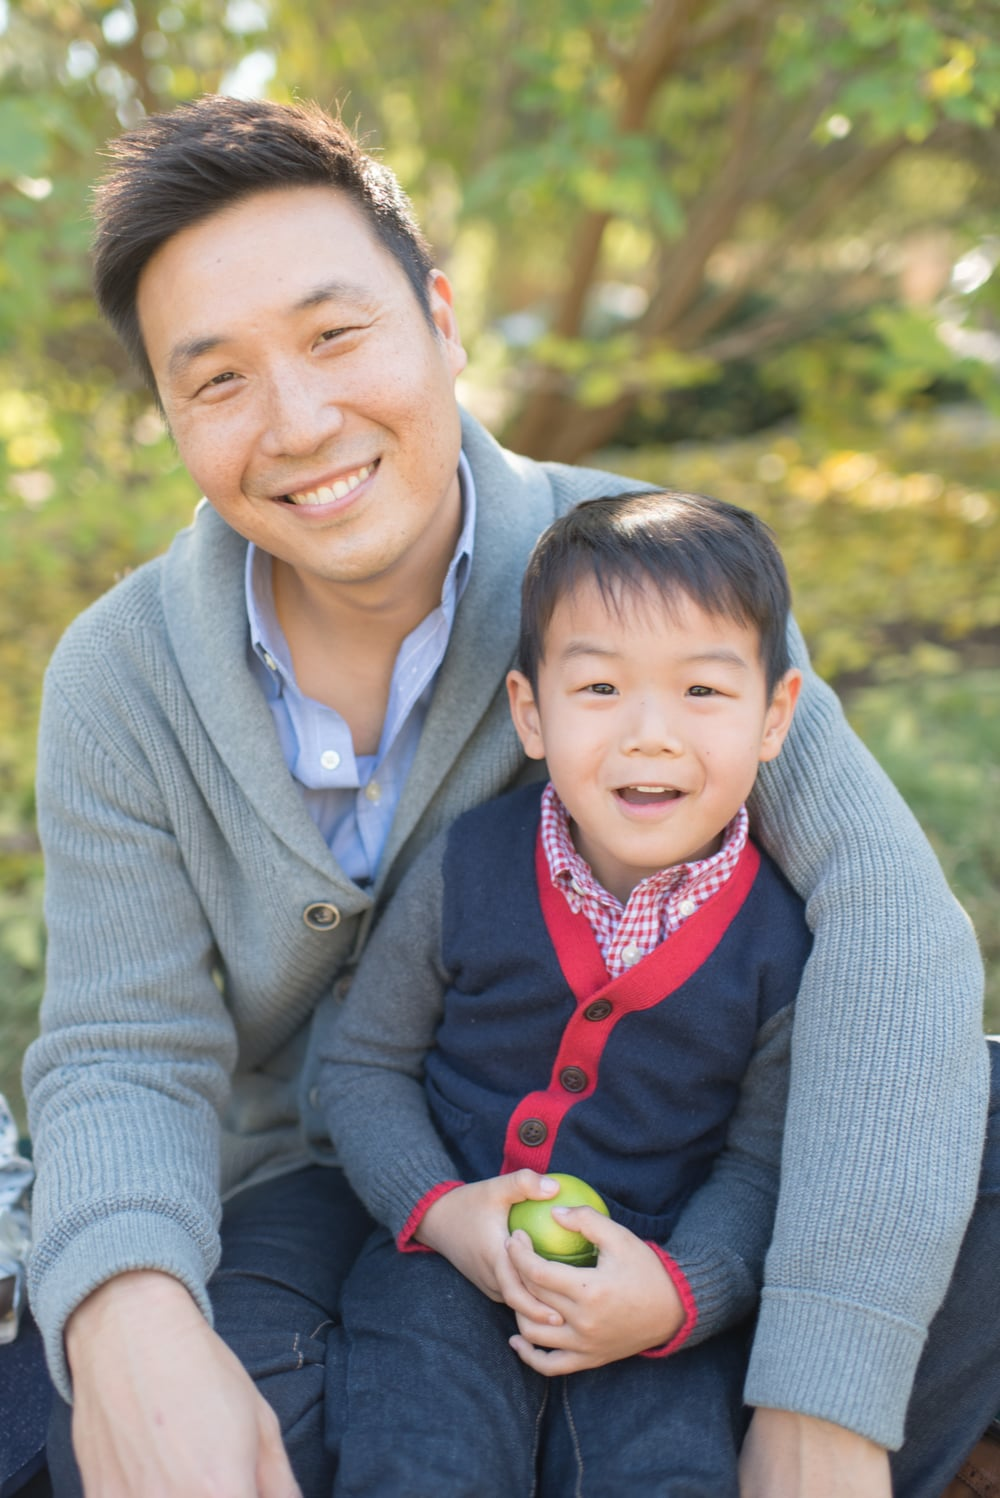 ahn-family-portraits-003-_CW11635-edits-la-kids-photography.jpg